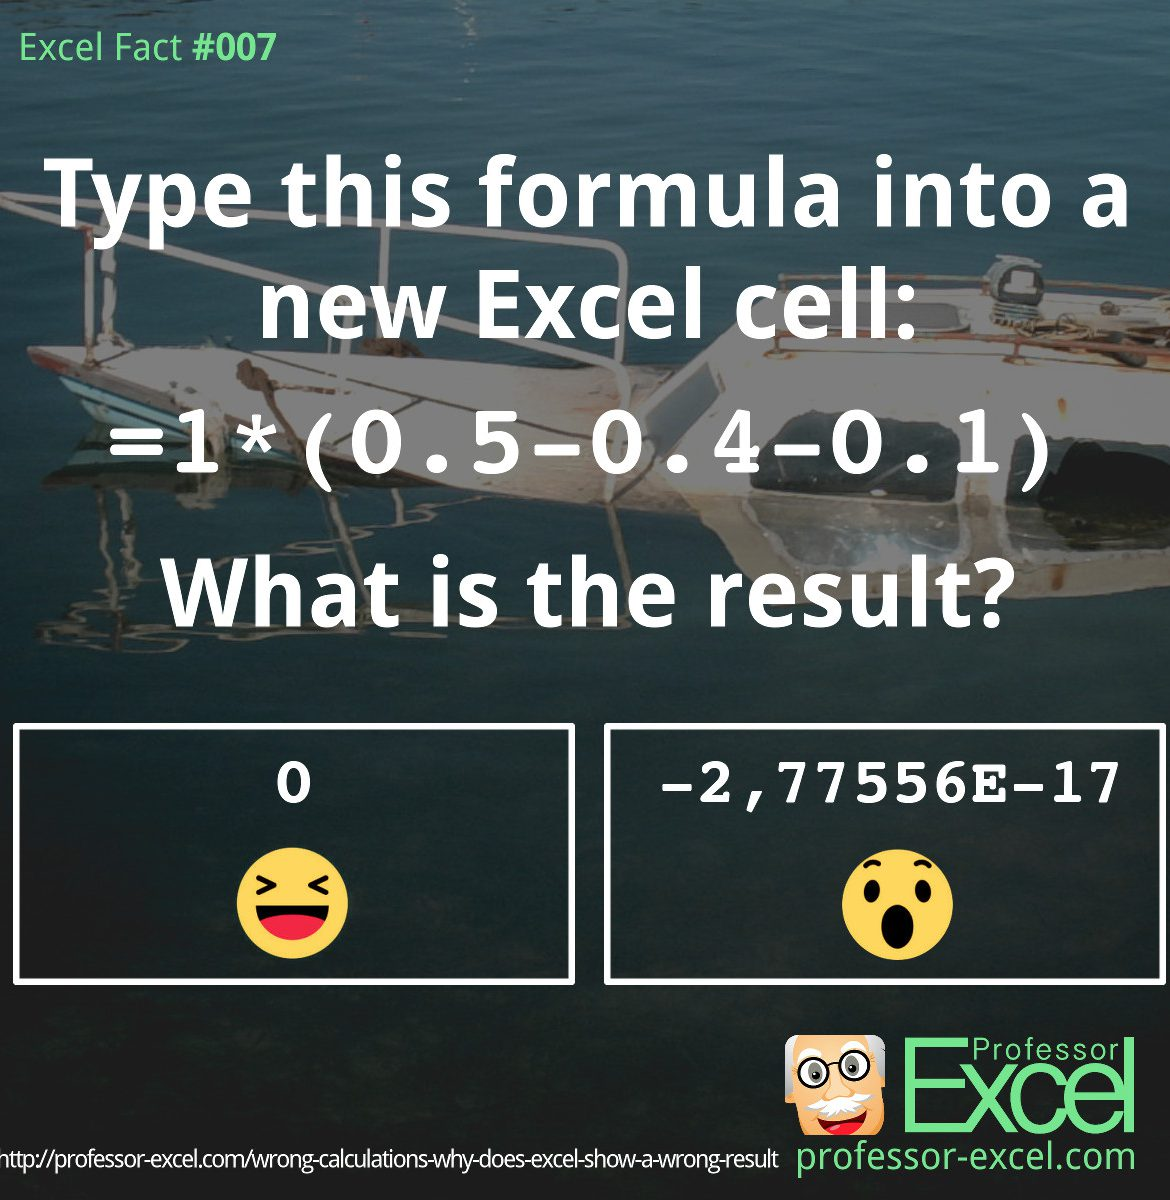 excel, excel fact, fact, wrong, result, calculate, calculation, error, mistake